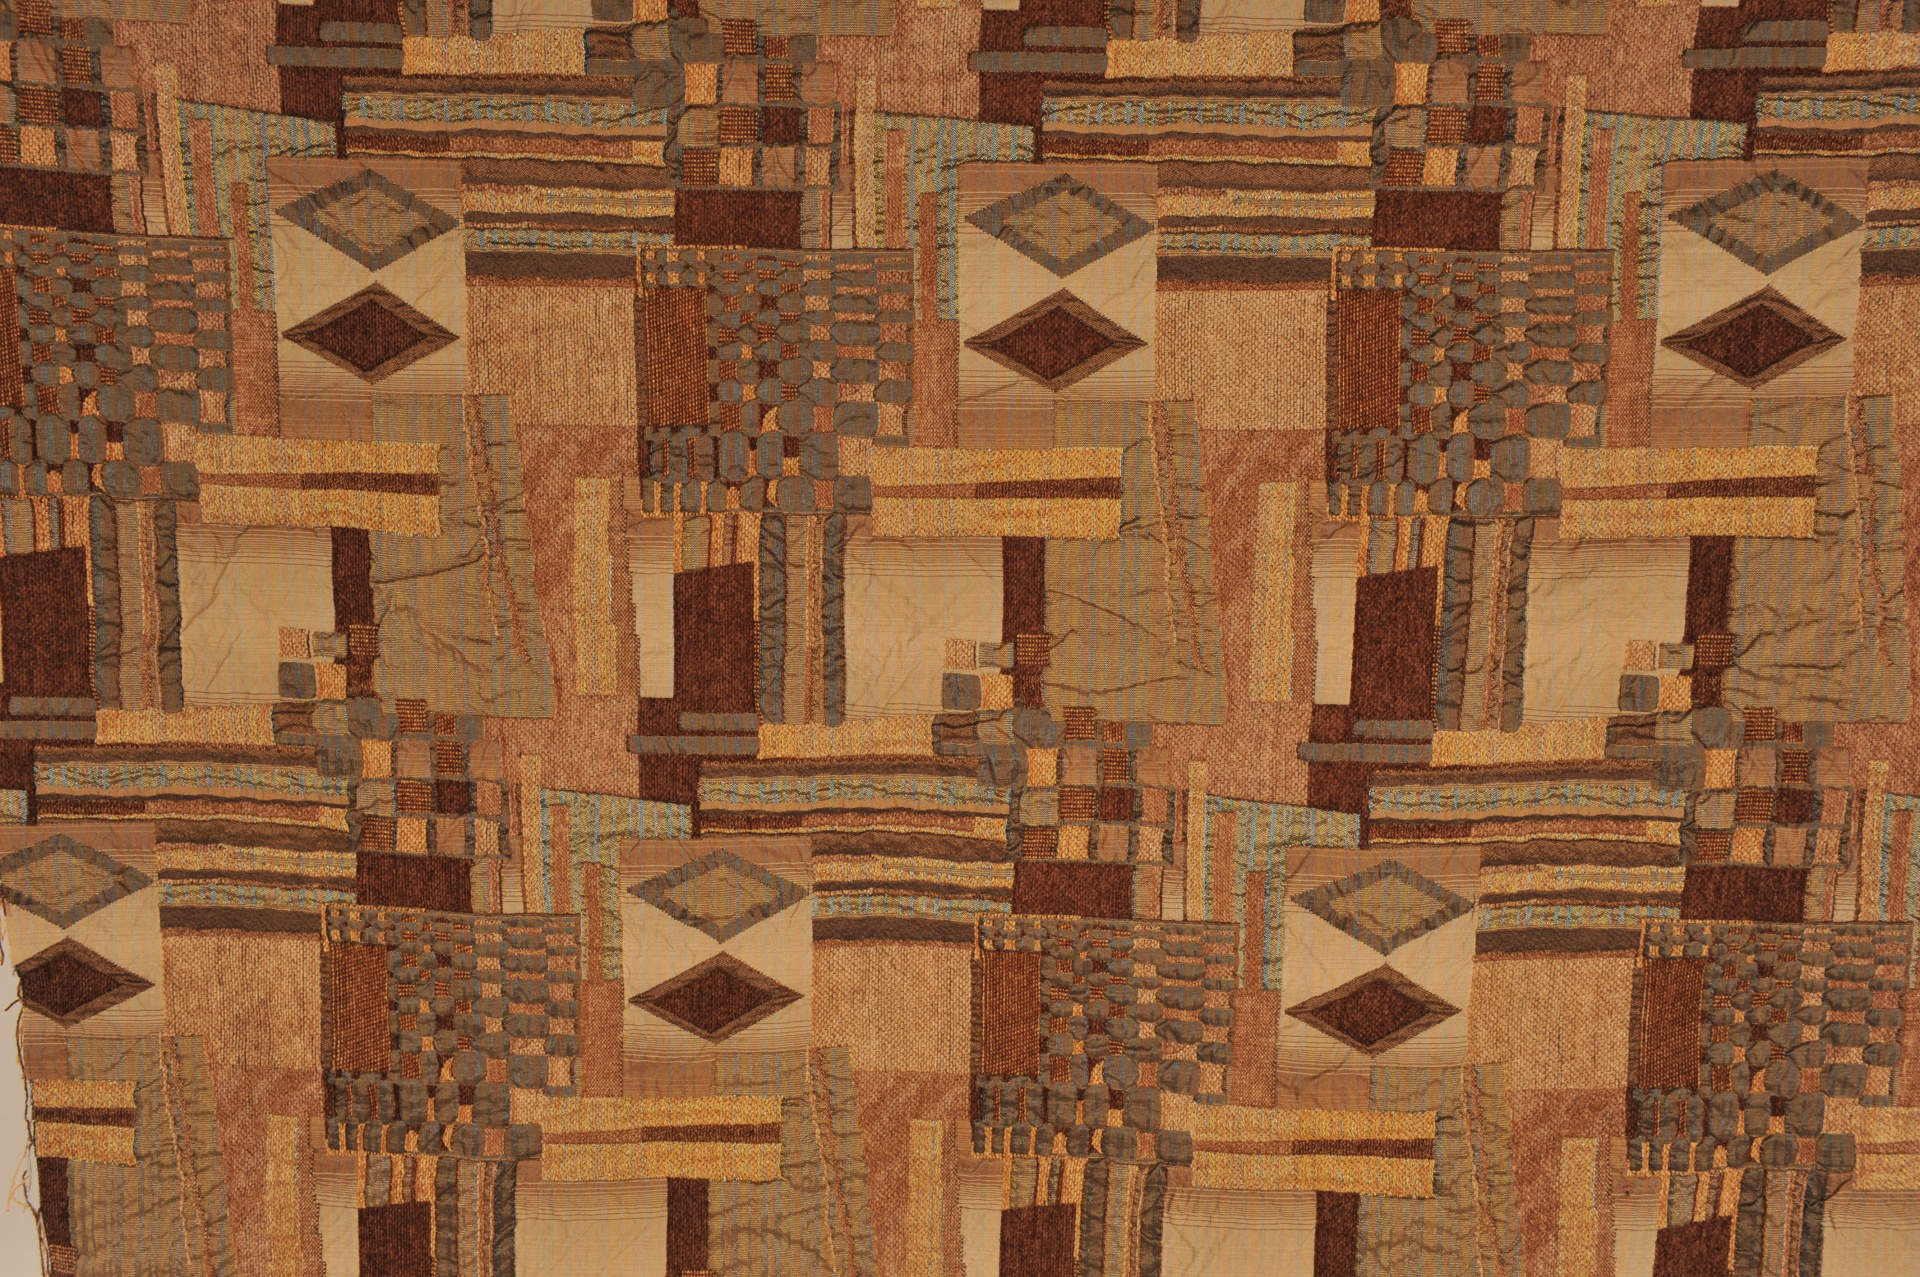 PB - PICASSO BLOCK QUILTED TAPESTRY